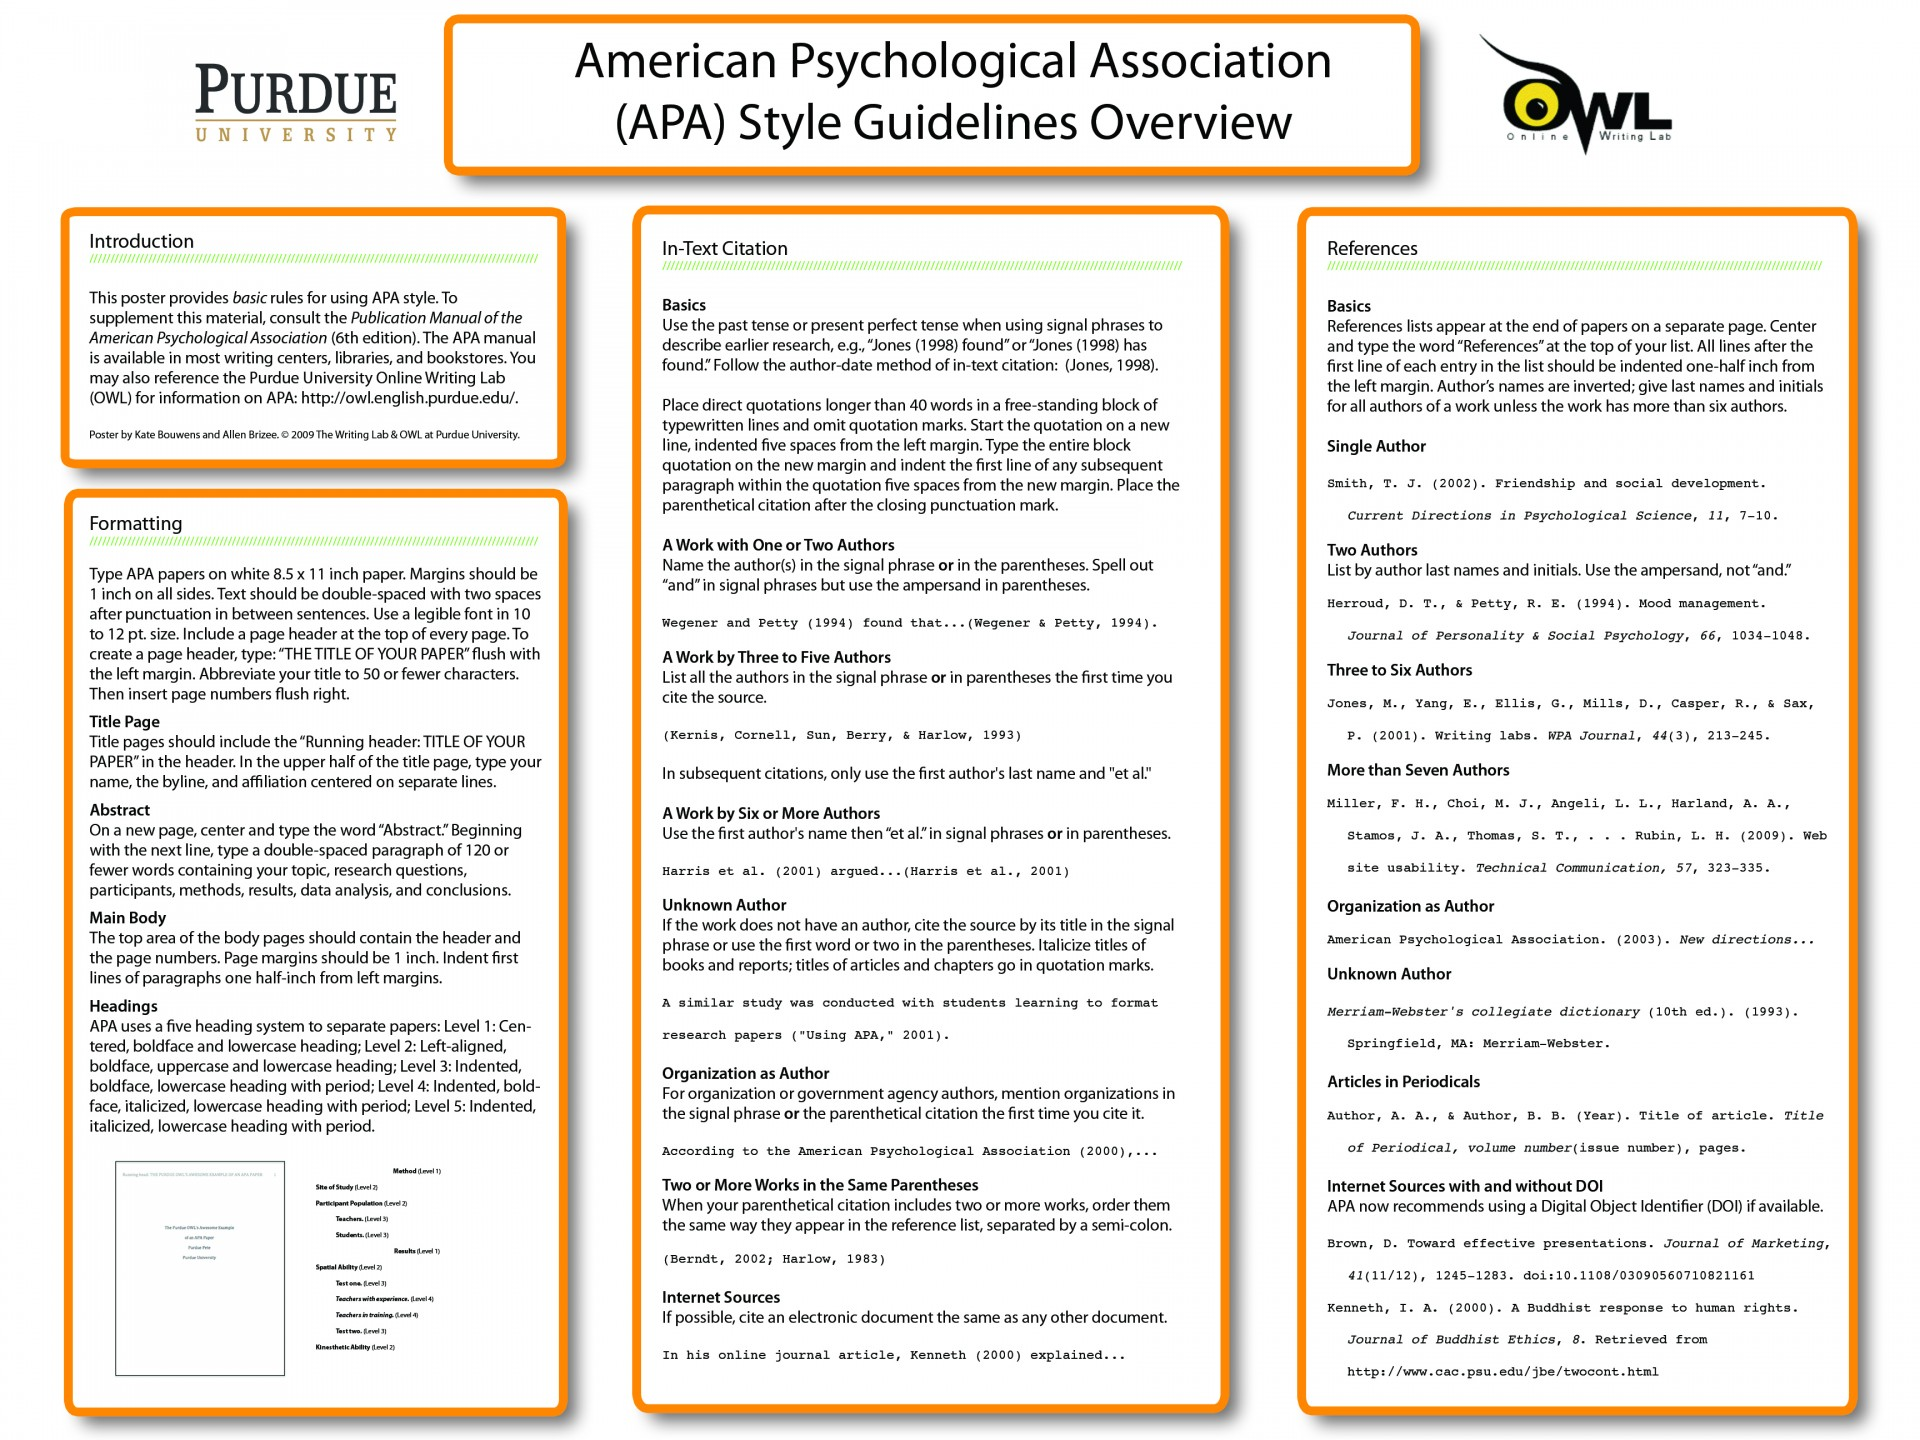 015 Research Paper Apaposter09 Apa Format Shocking Bibliography In Text Citations Citation Style Model 1920